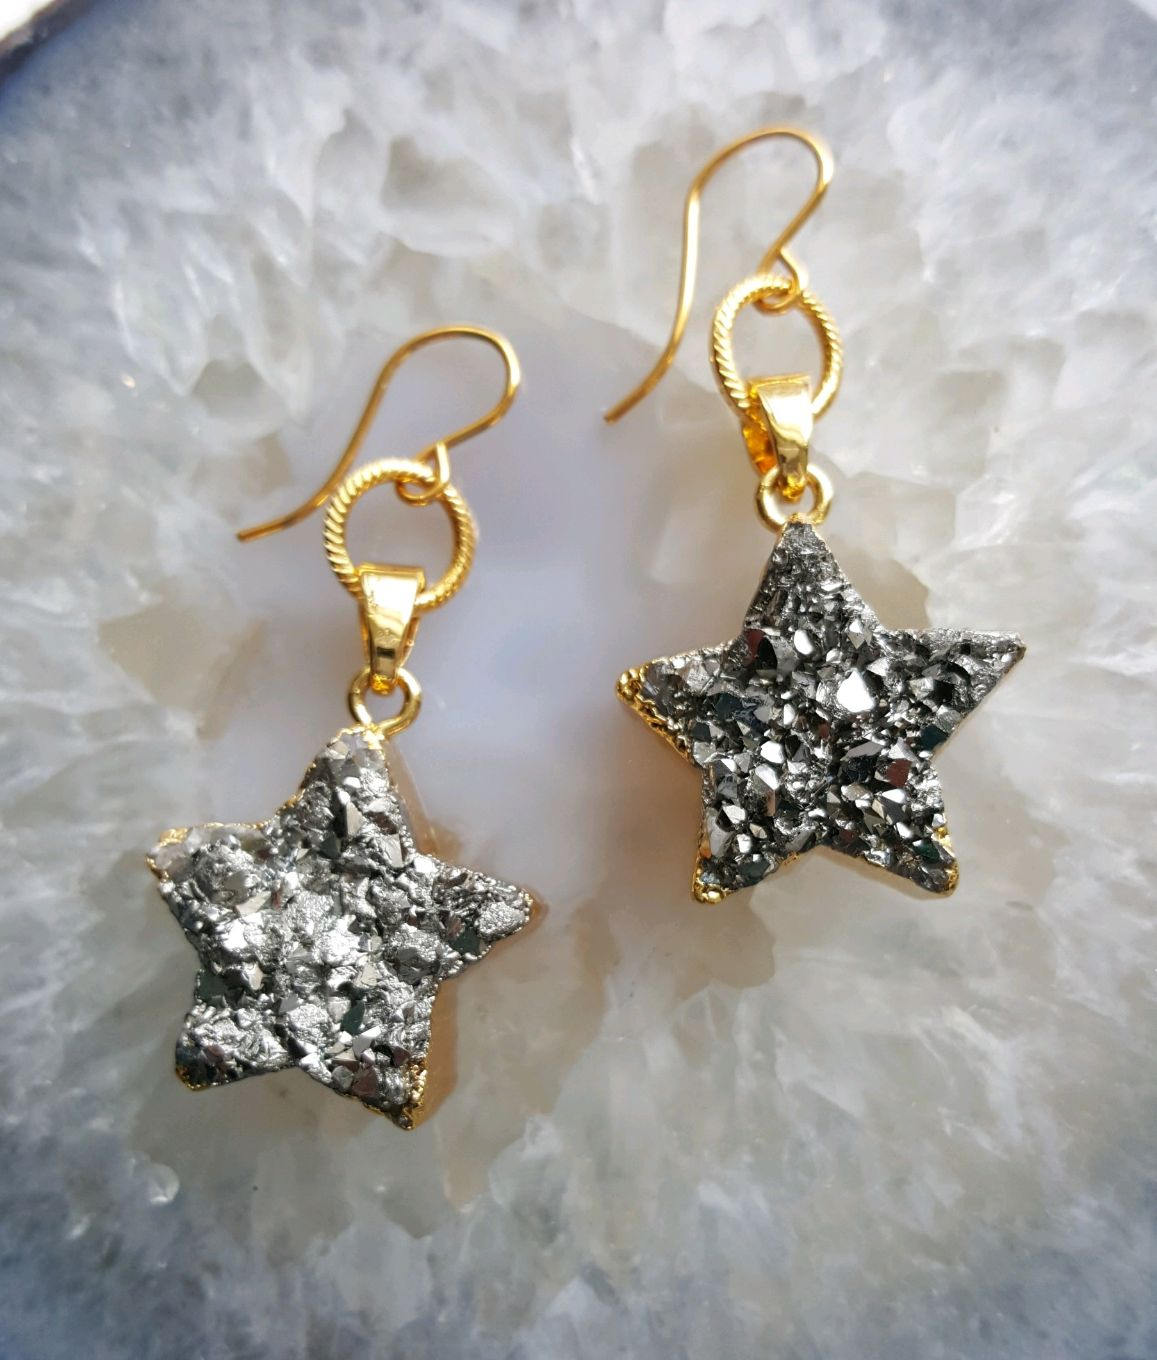 Silver drusy agate Stars, 24K electrolated edges, gold filled ear wires